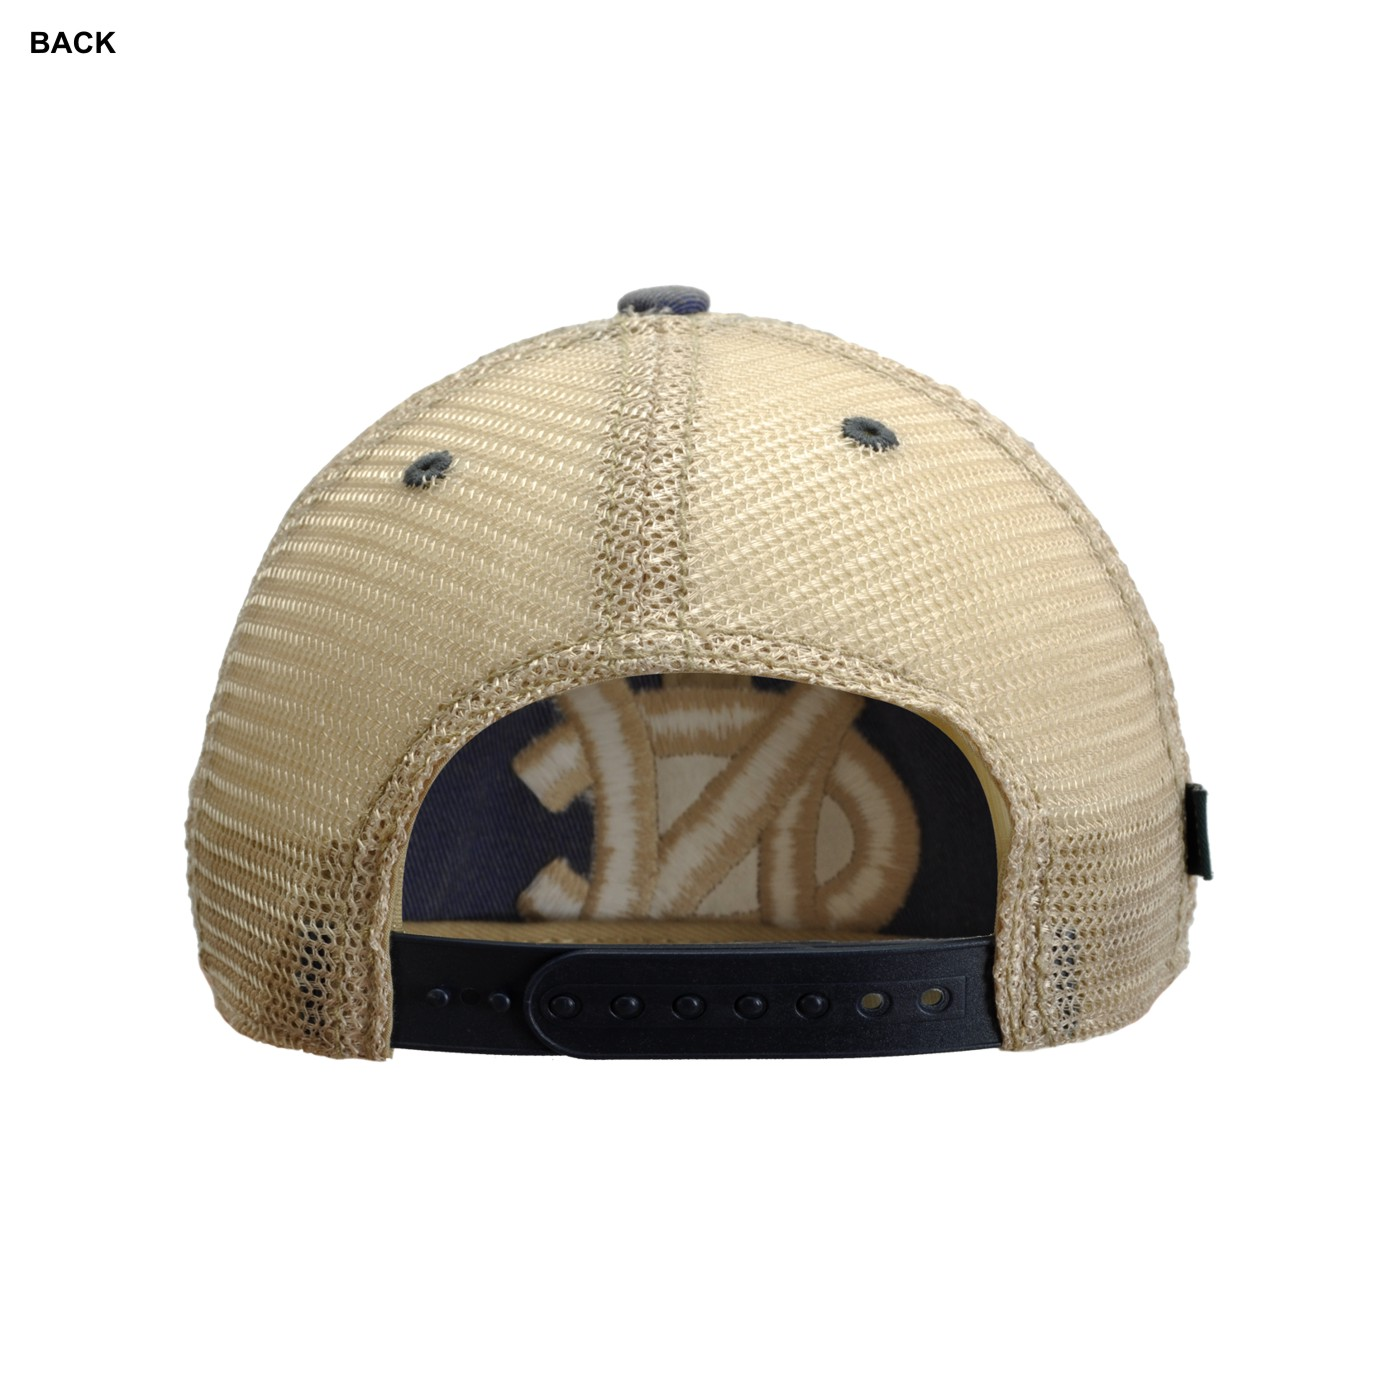 Reaction Mesh Trucker Hat (Navy) by Legacy